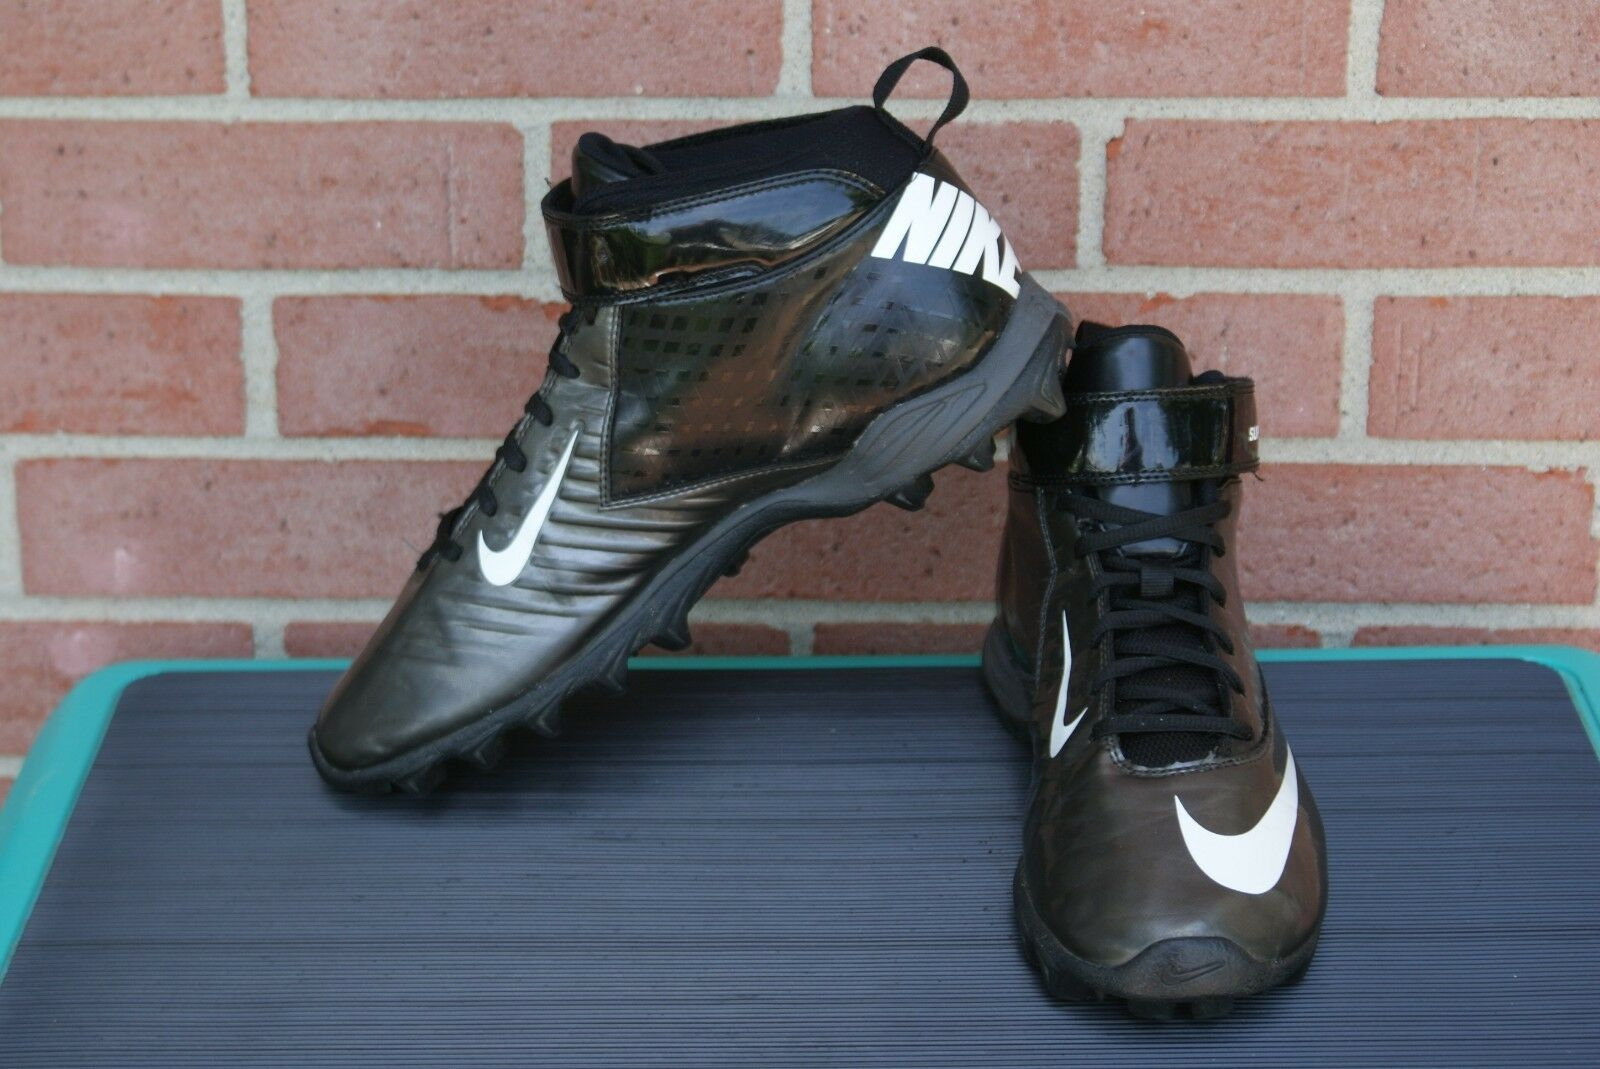 Nike Men's Super Shark Pro Football Cleat Shoes 319168-009 Black/Metallic 10.5